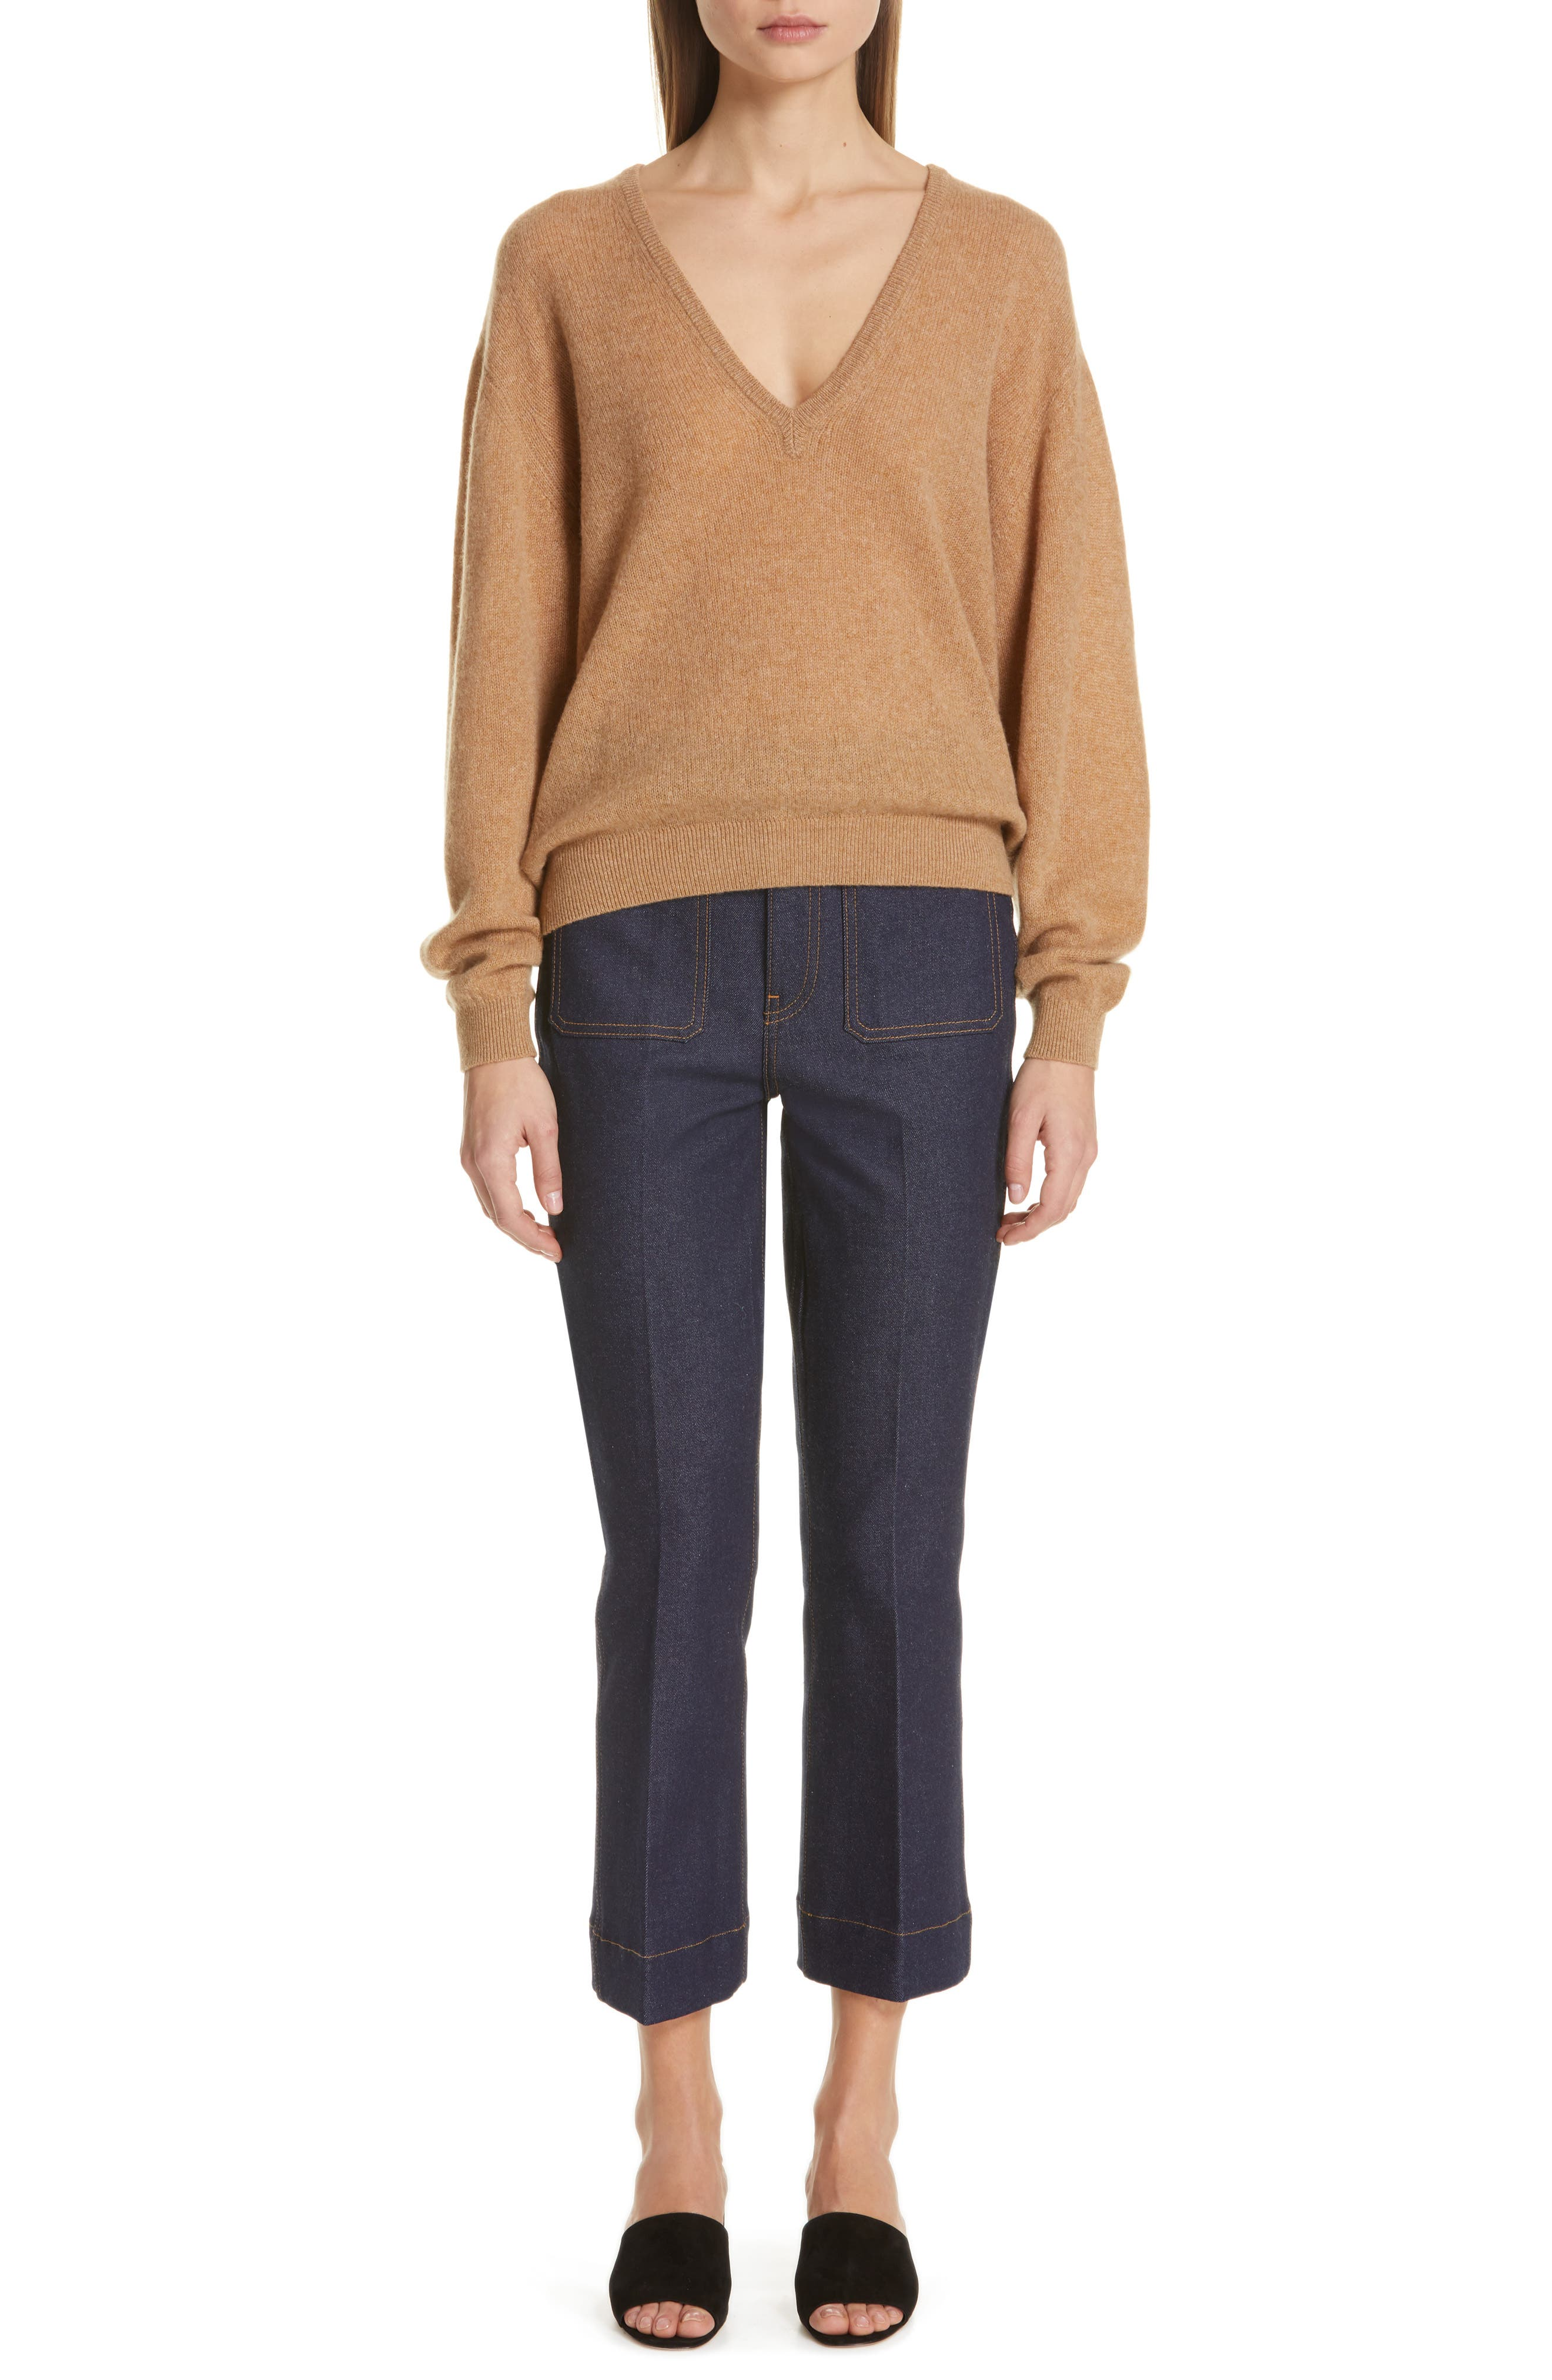 KHAITE,                             Sam Cashmere Sweater,                             Alternate thumbnail 8, color,                             CAMEL